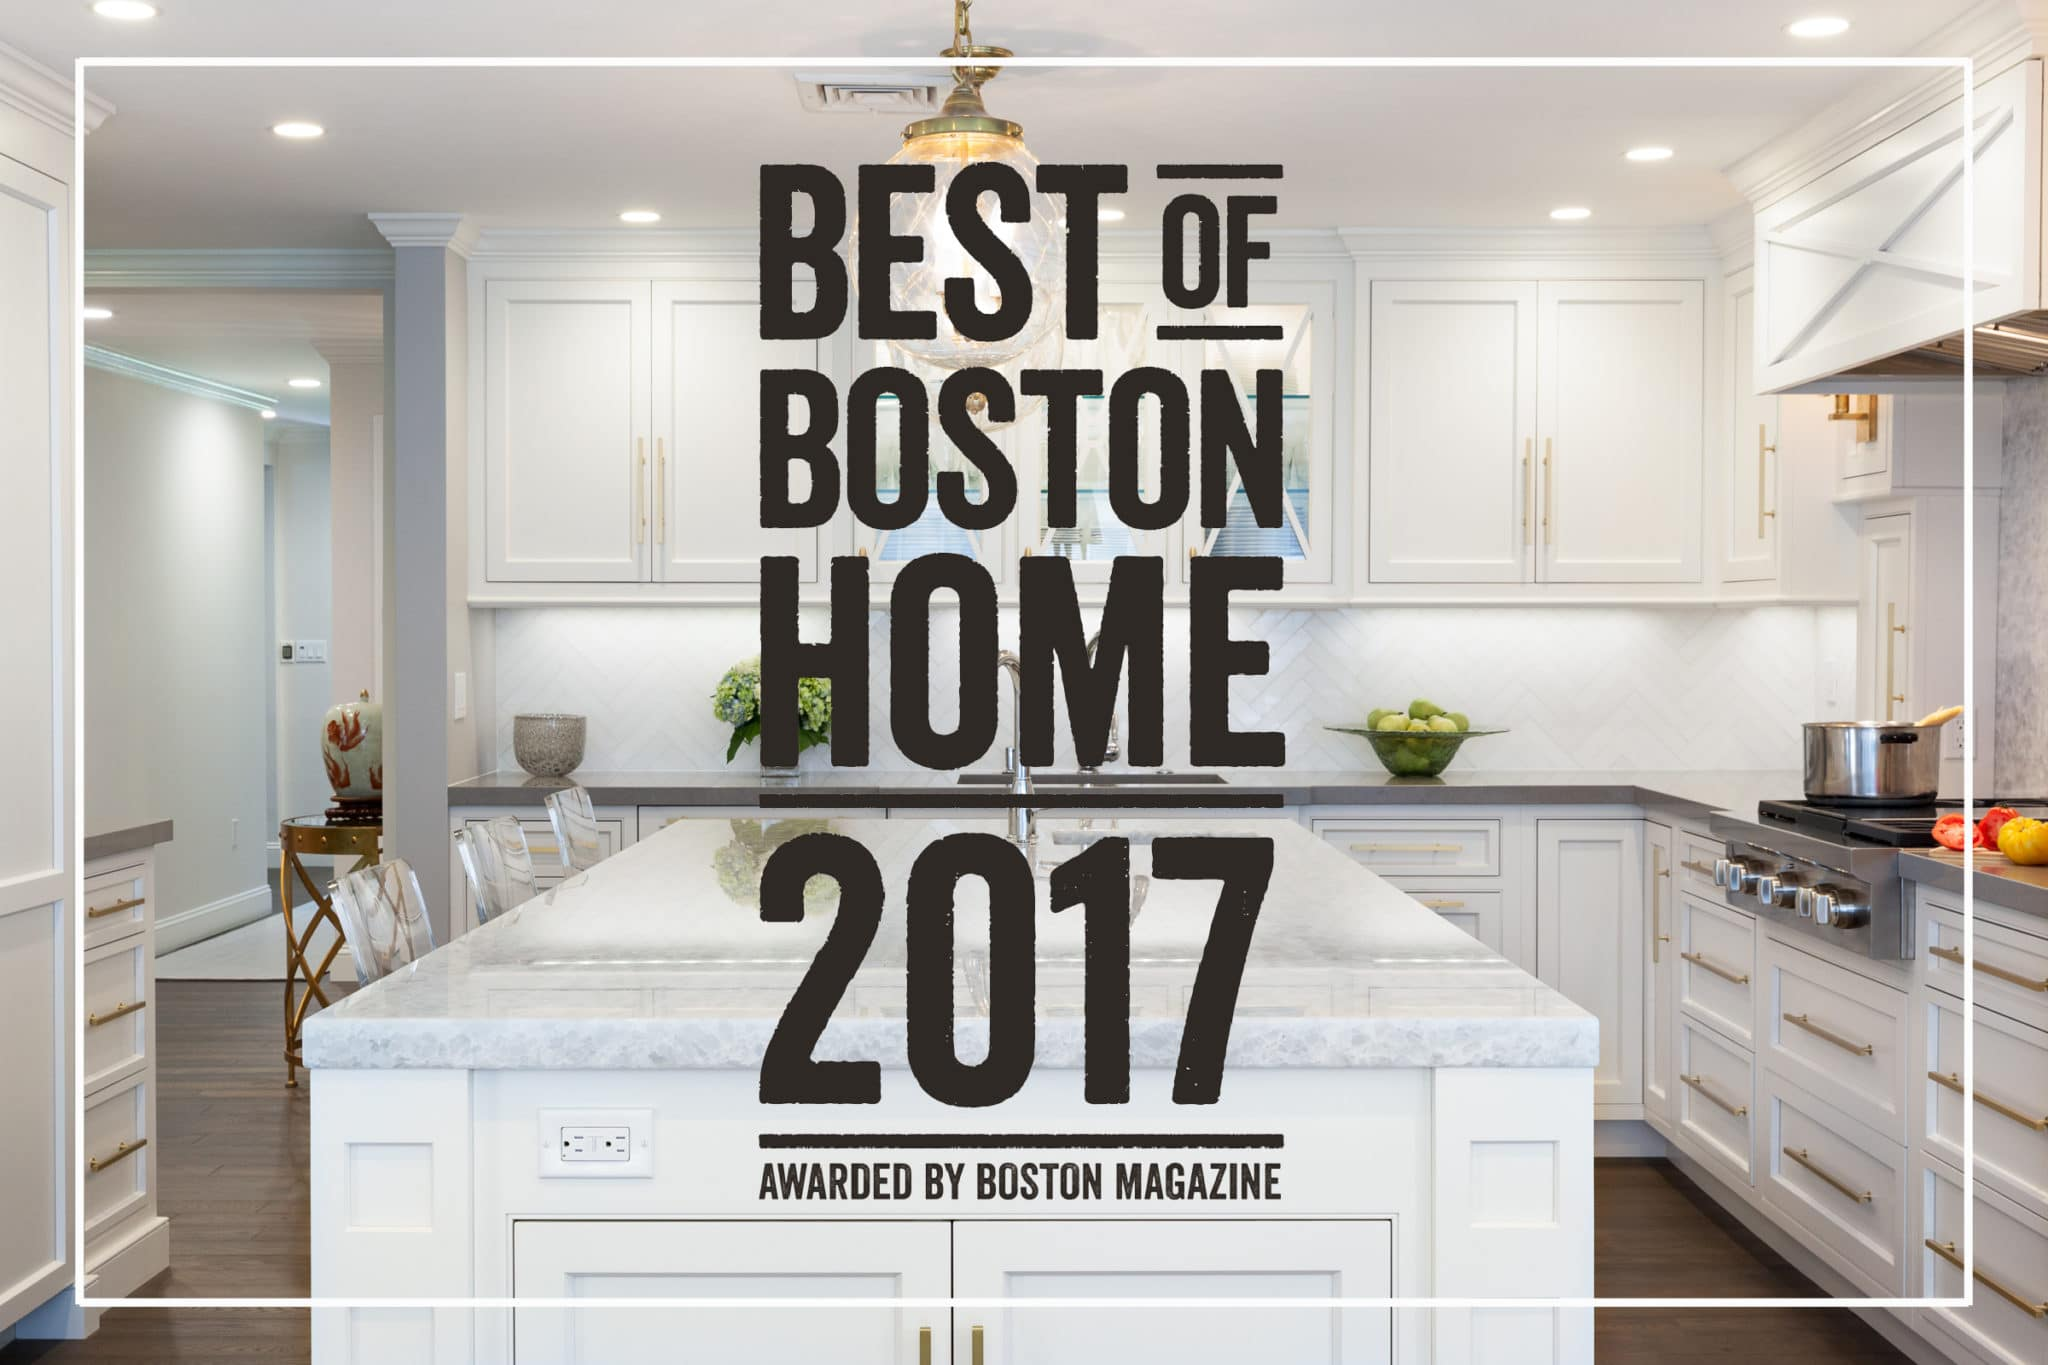 kitchen cabinets and countertops. Metropolitan Wins Best of Boston Award Custom Massachusetts Kitchen Cabinets and Countertops